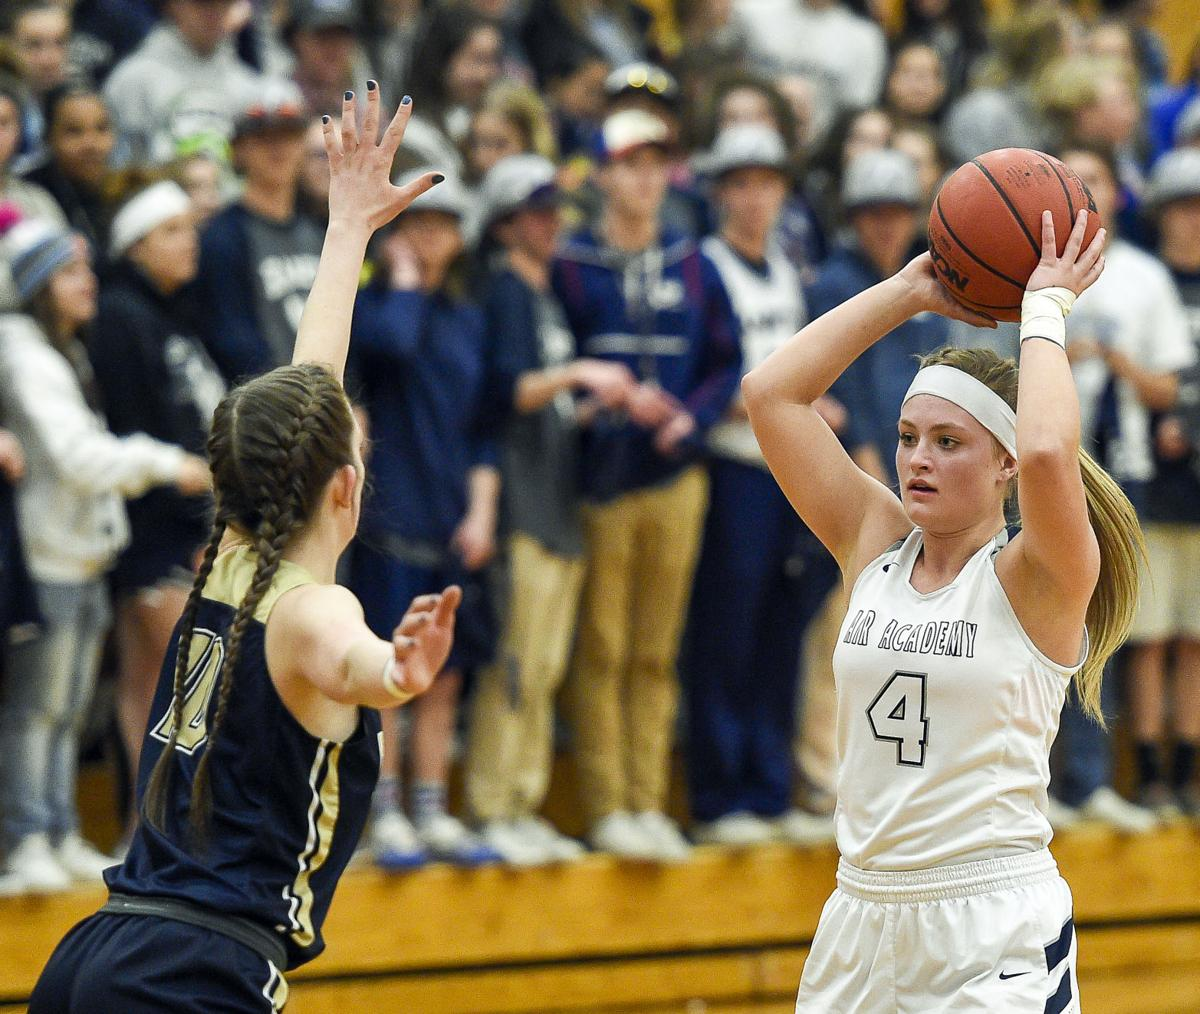 Dramatic Shot Carries Widefield Girls' Basketball Team To